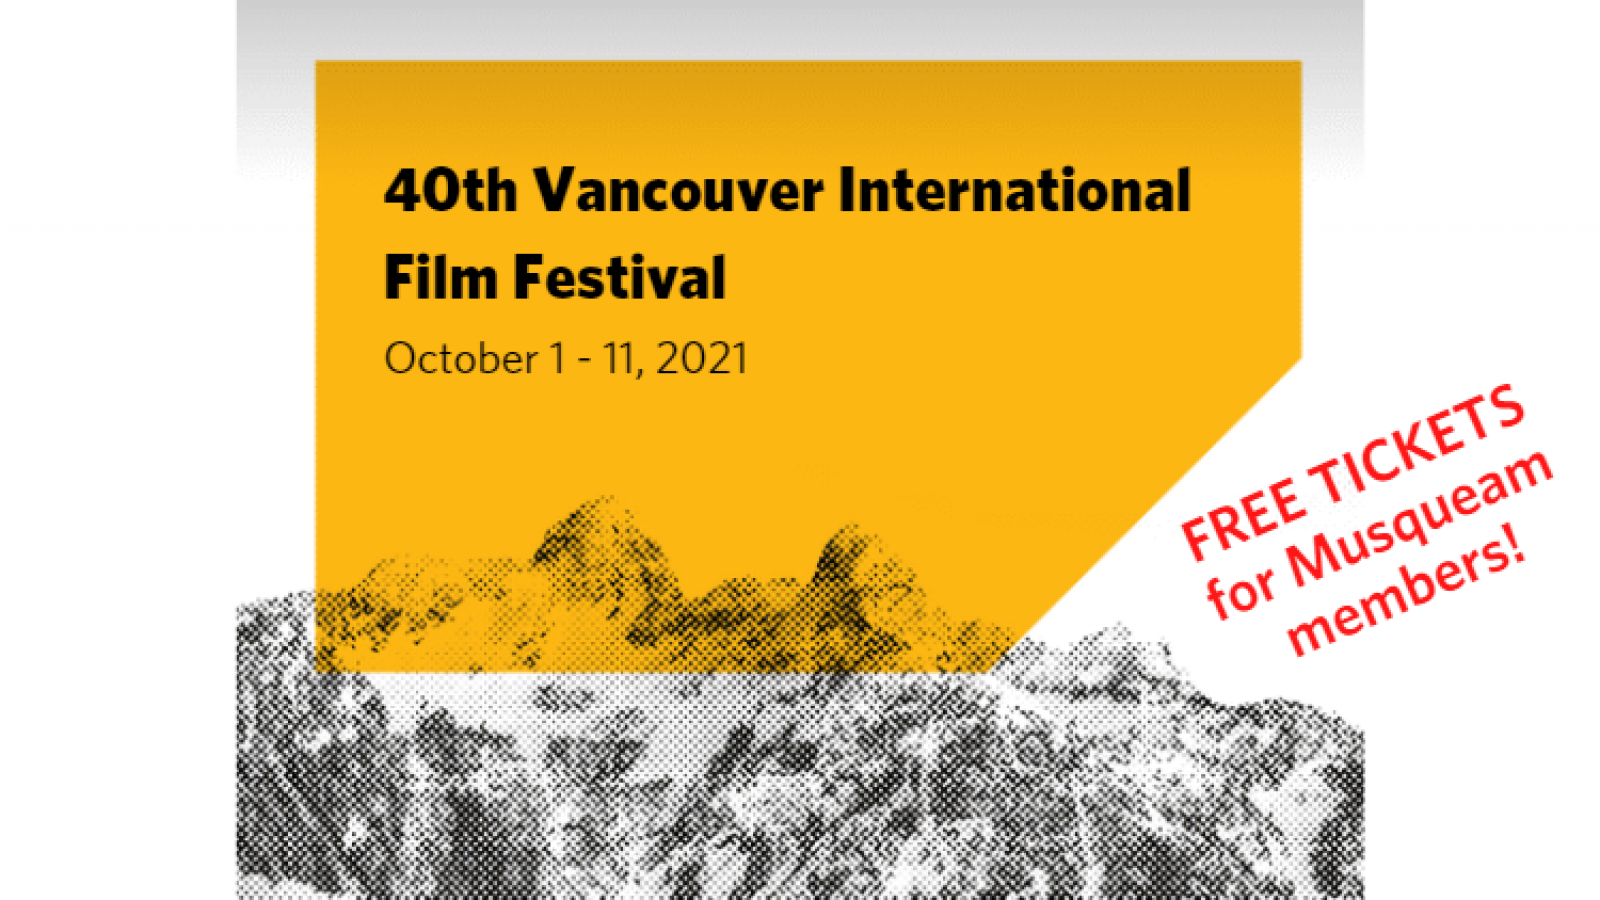 40th Vancouver International Film Festival ticket codes for Musqueam members